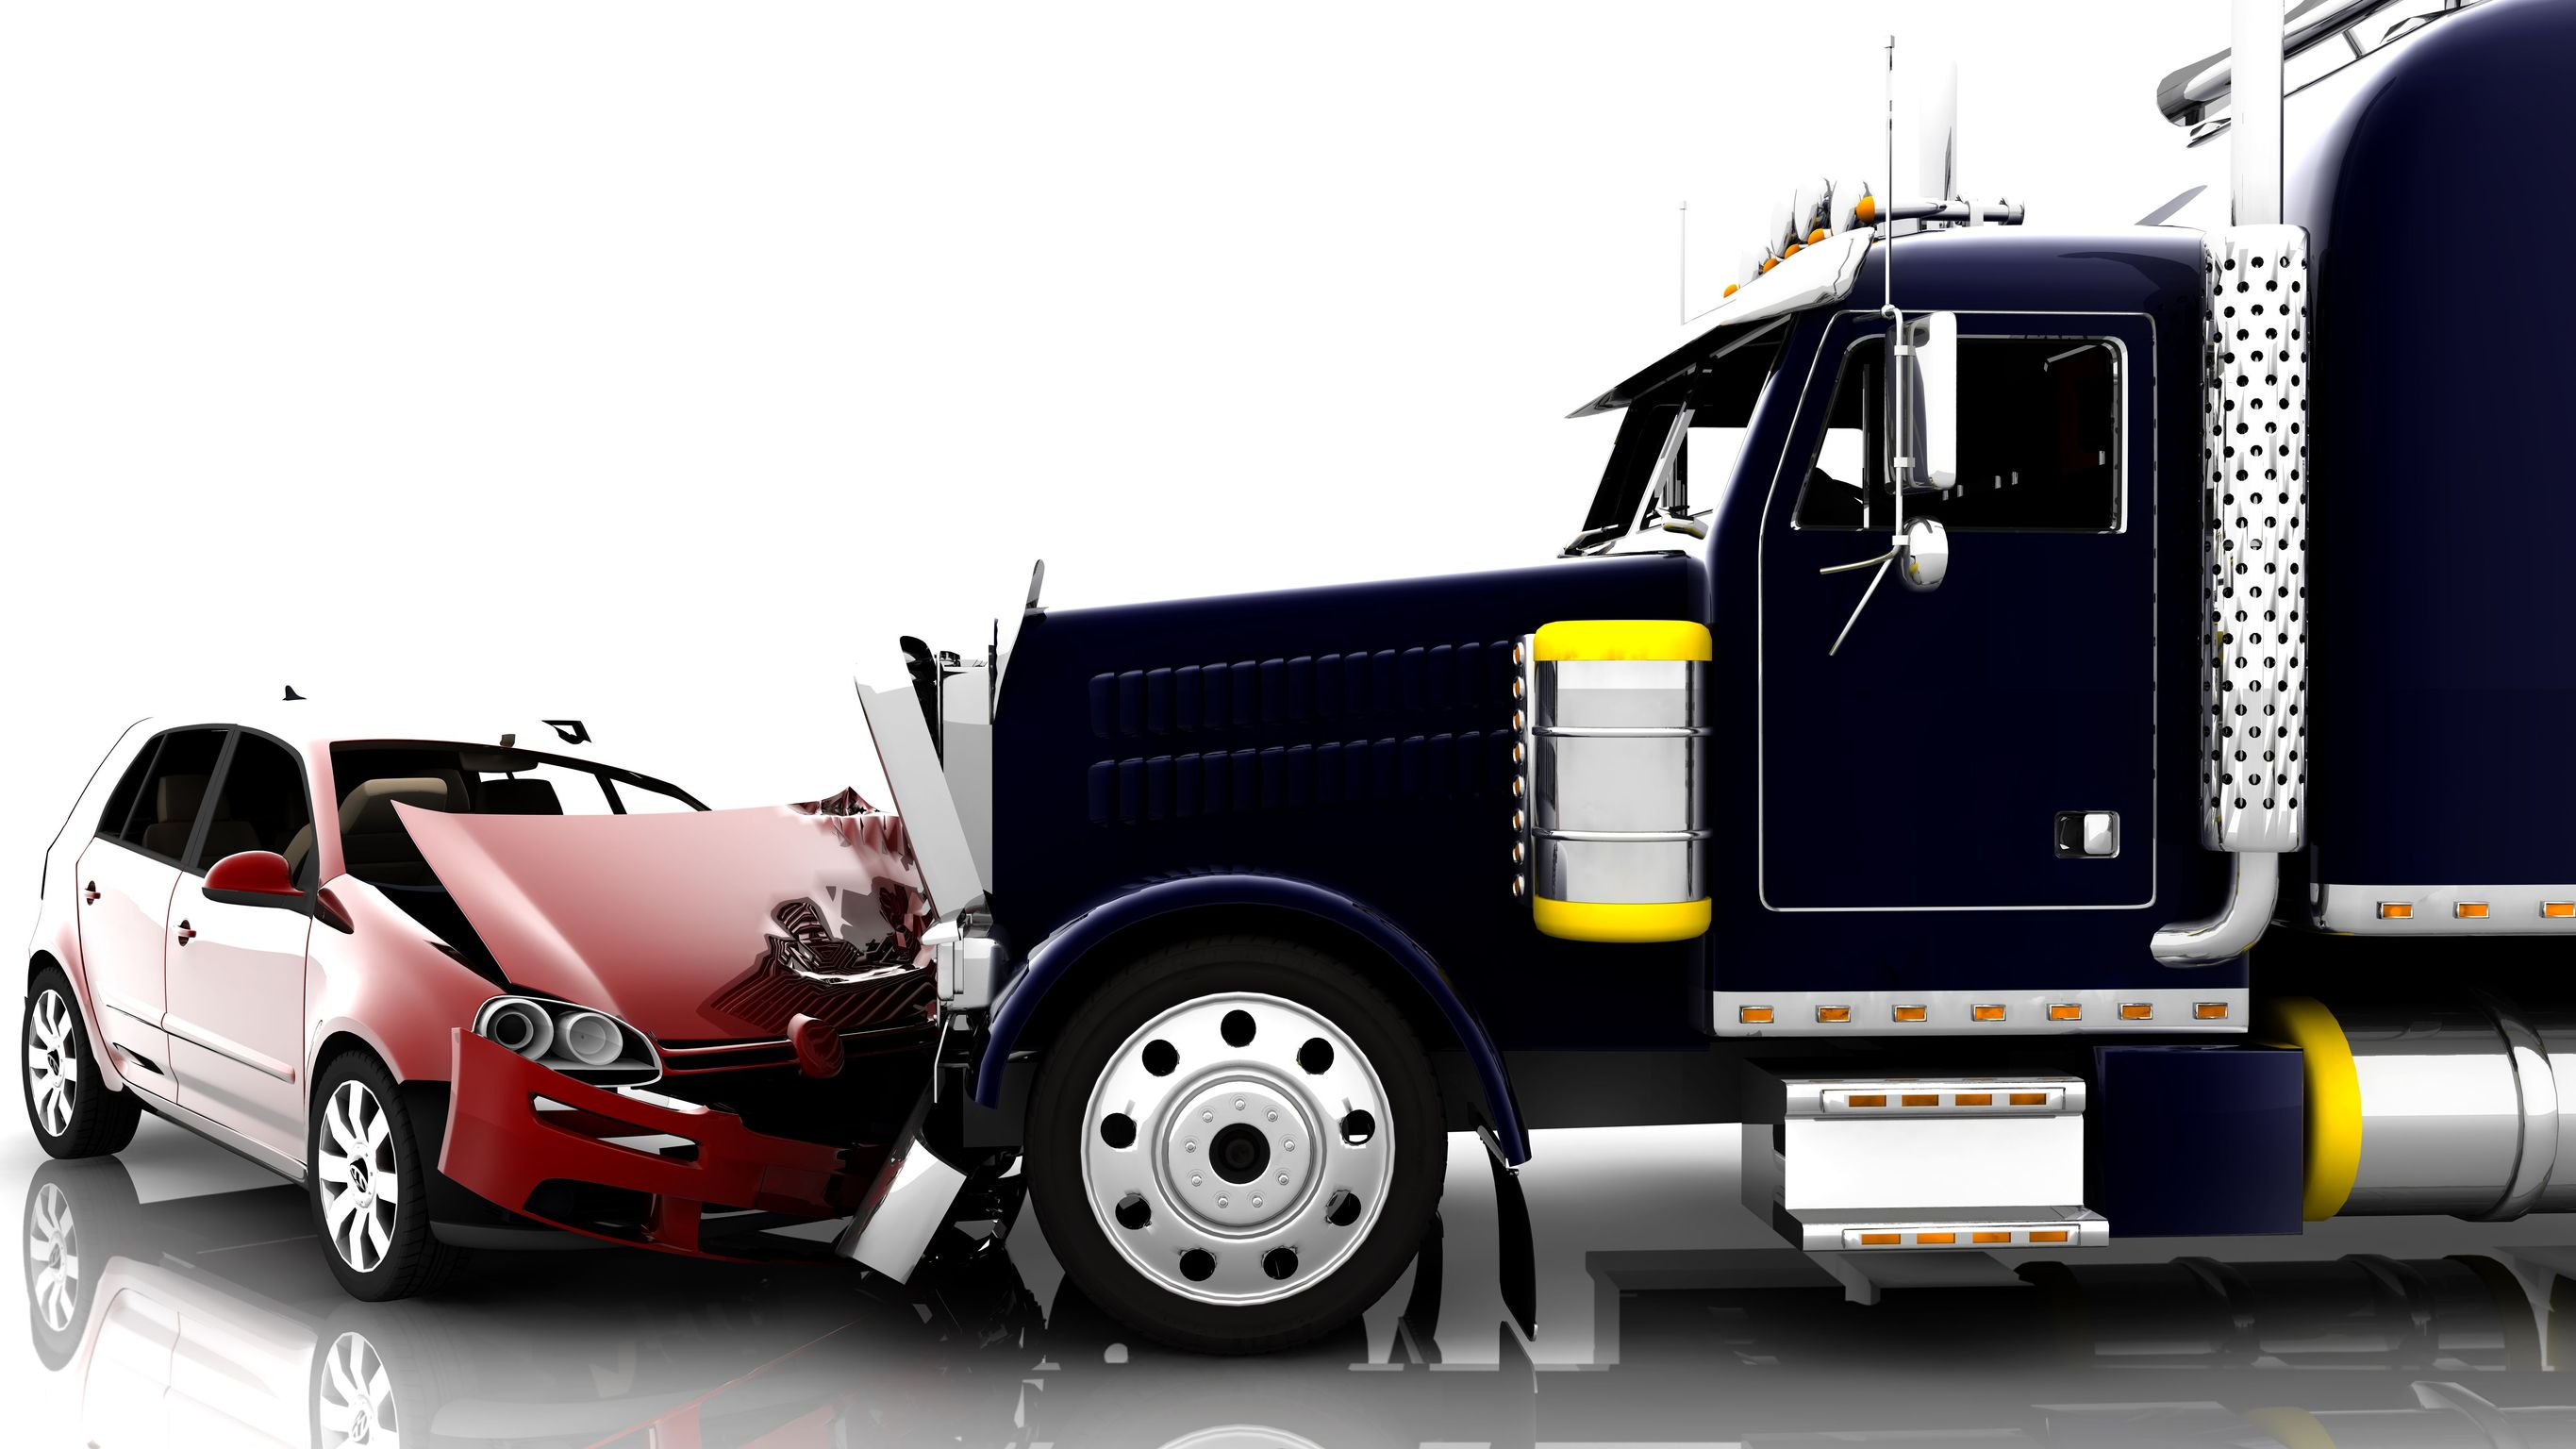 Traffic clipart truck accident #8